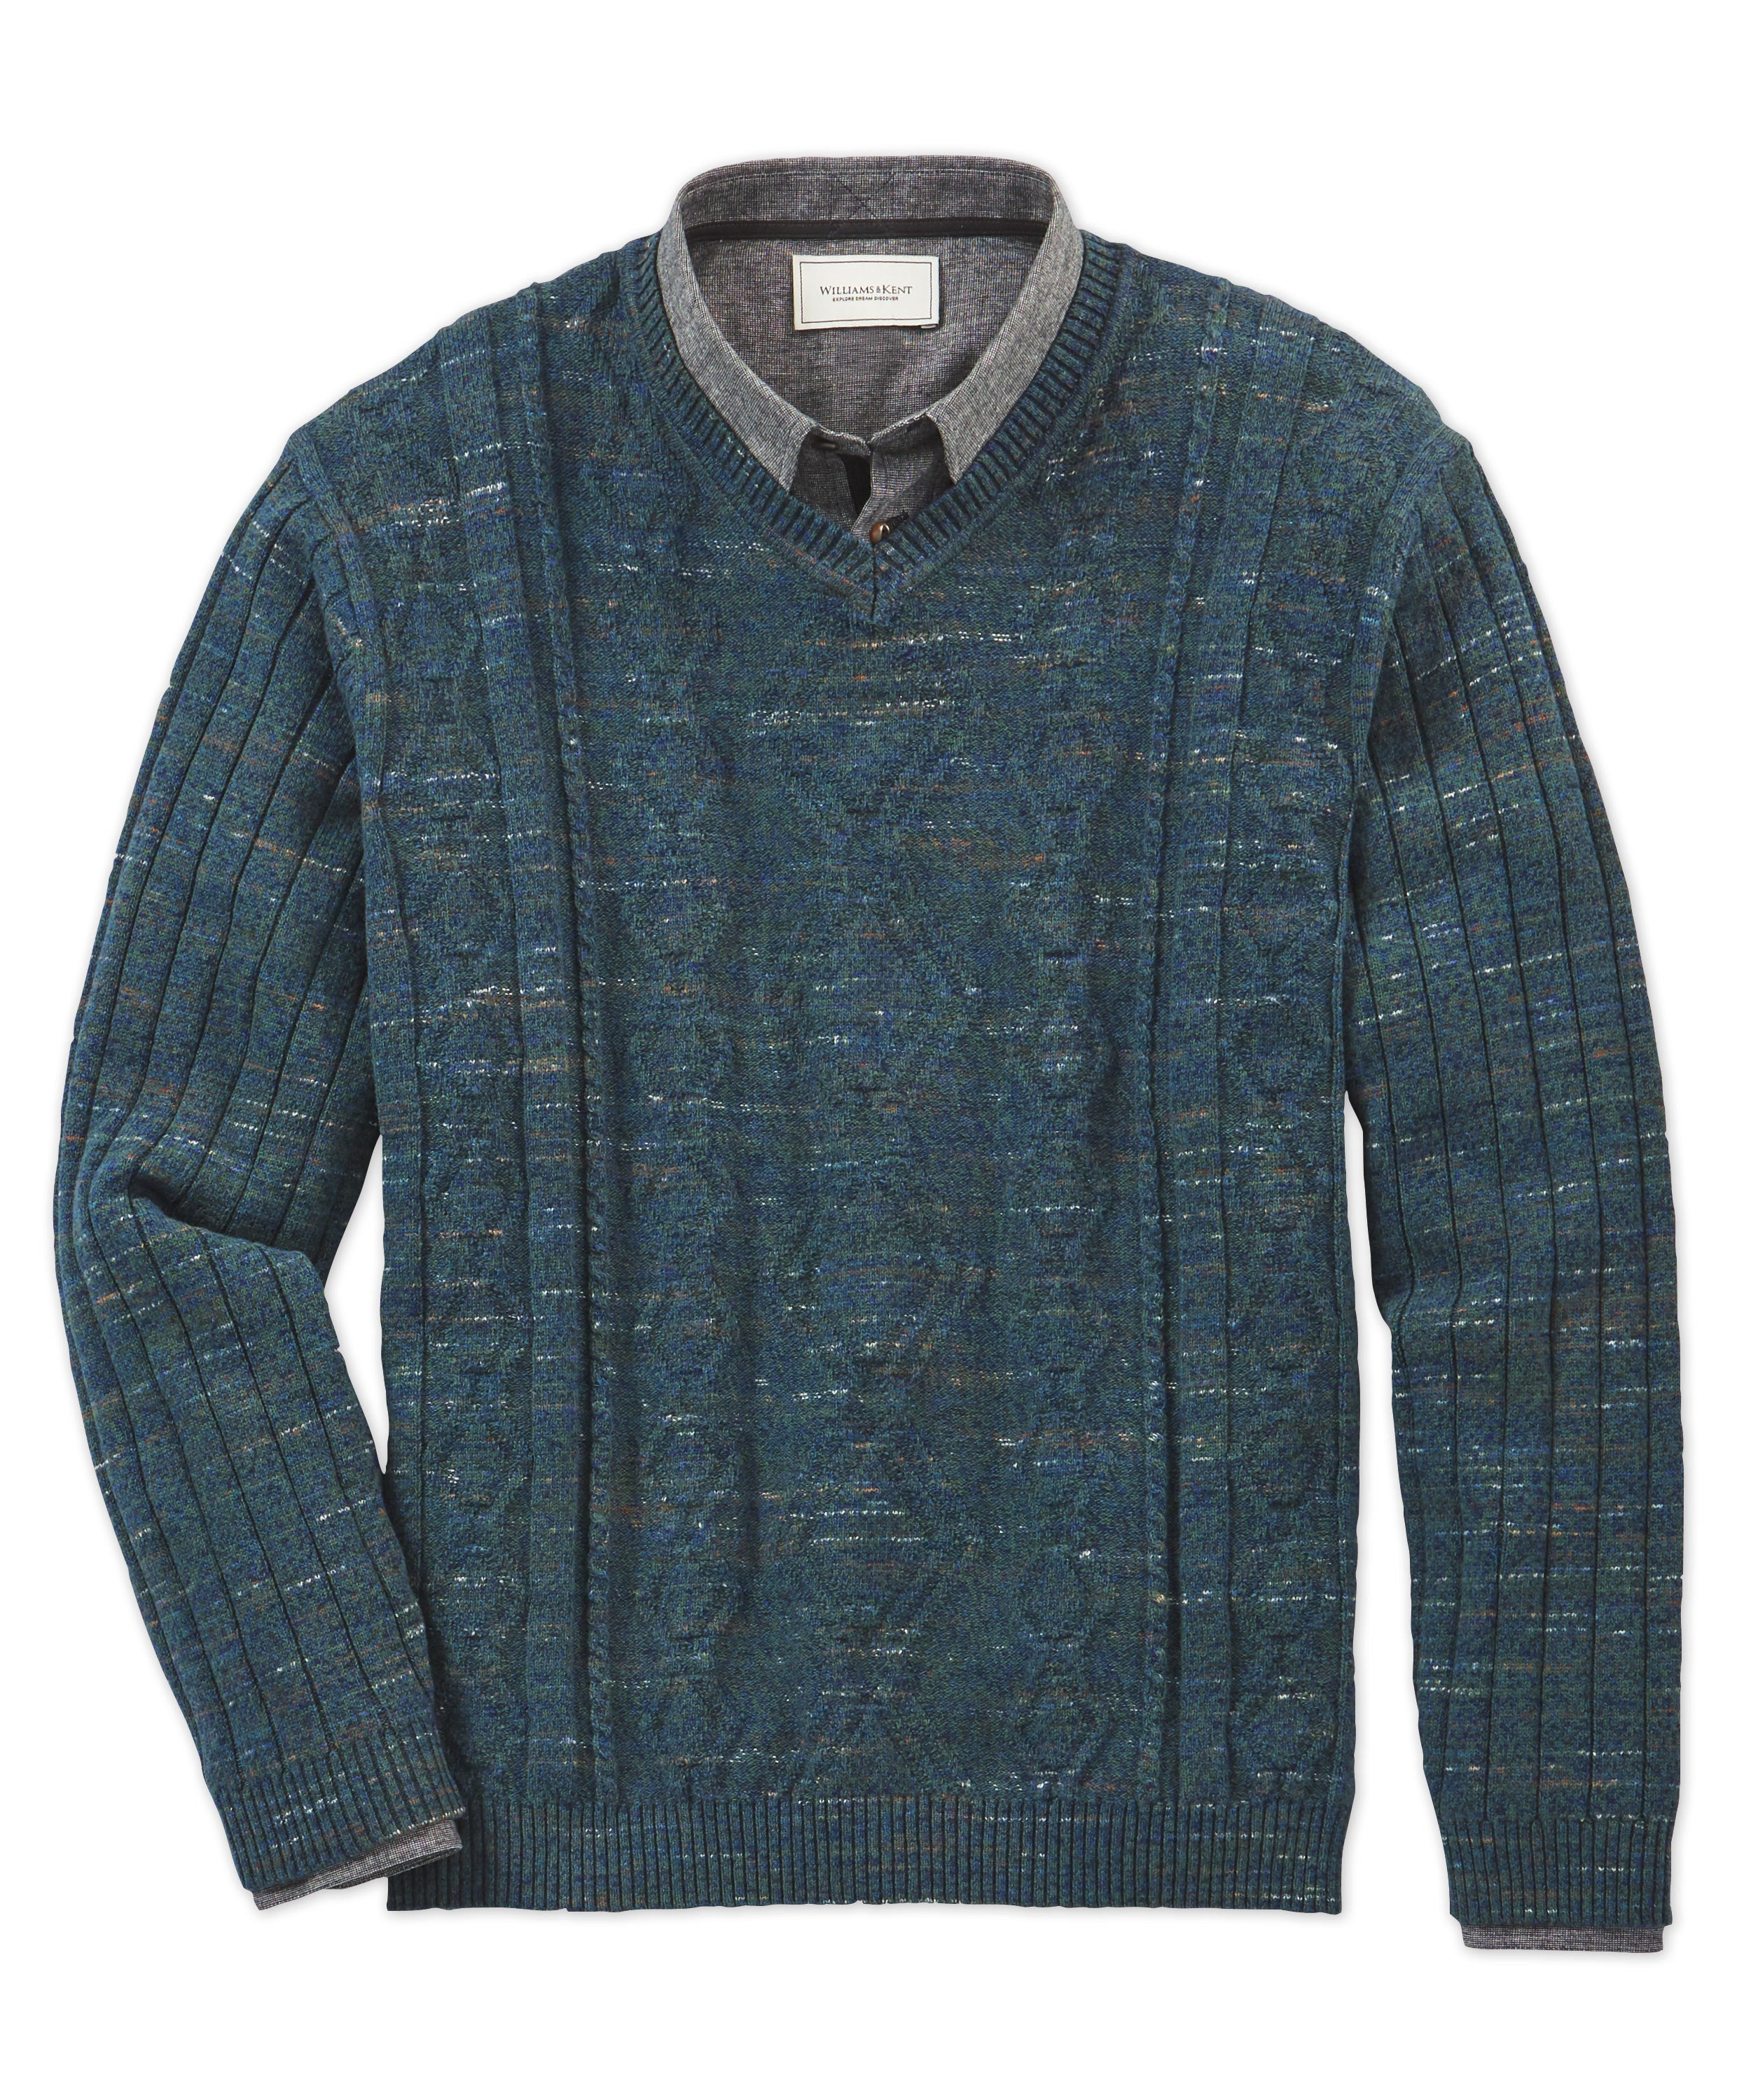 Novelty Fisherman V-Neck Sweater